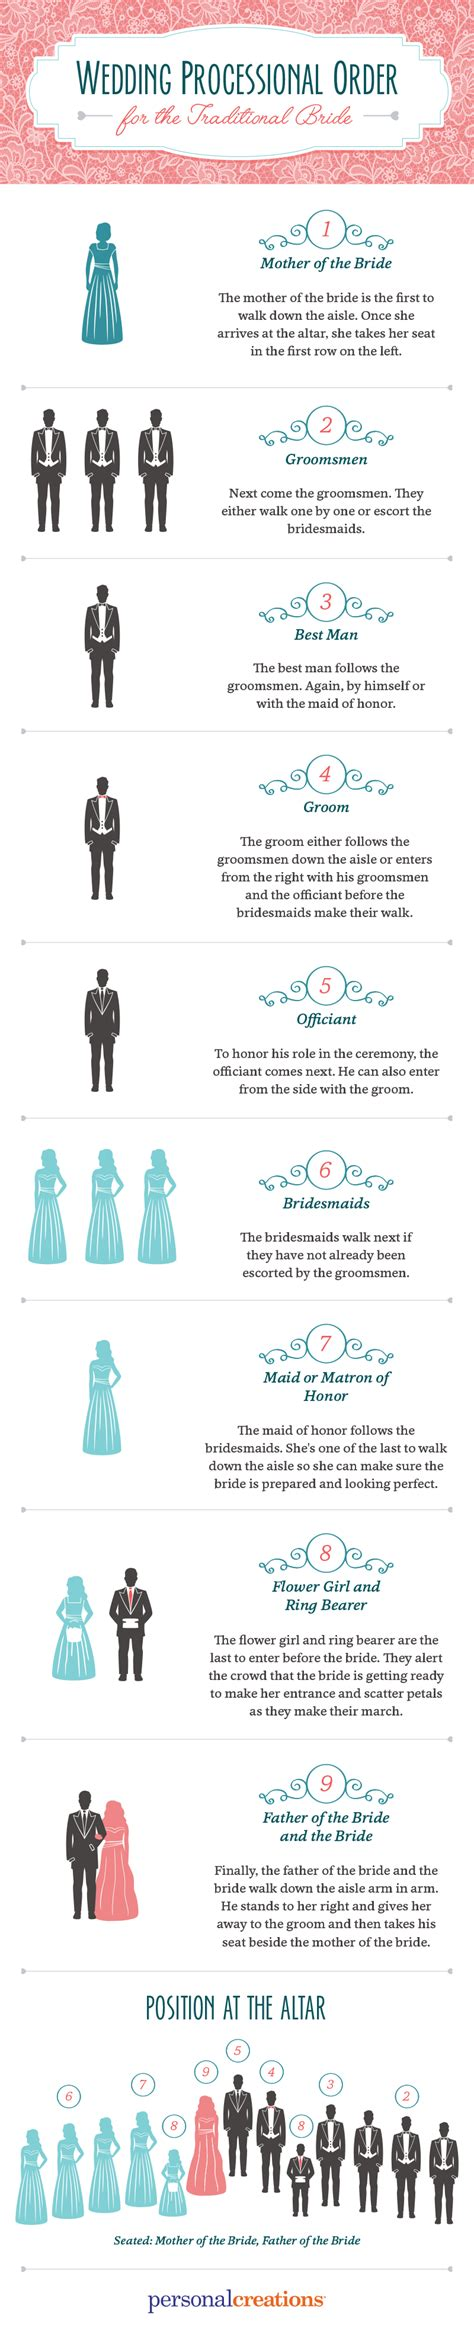 Galerry printable wedding planning guide